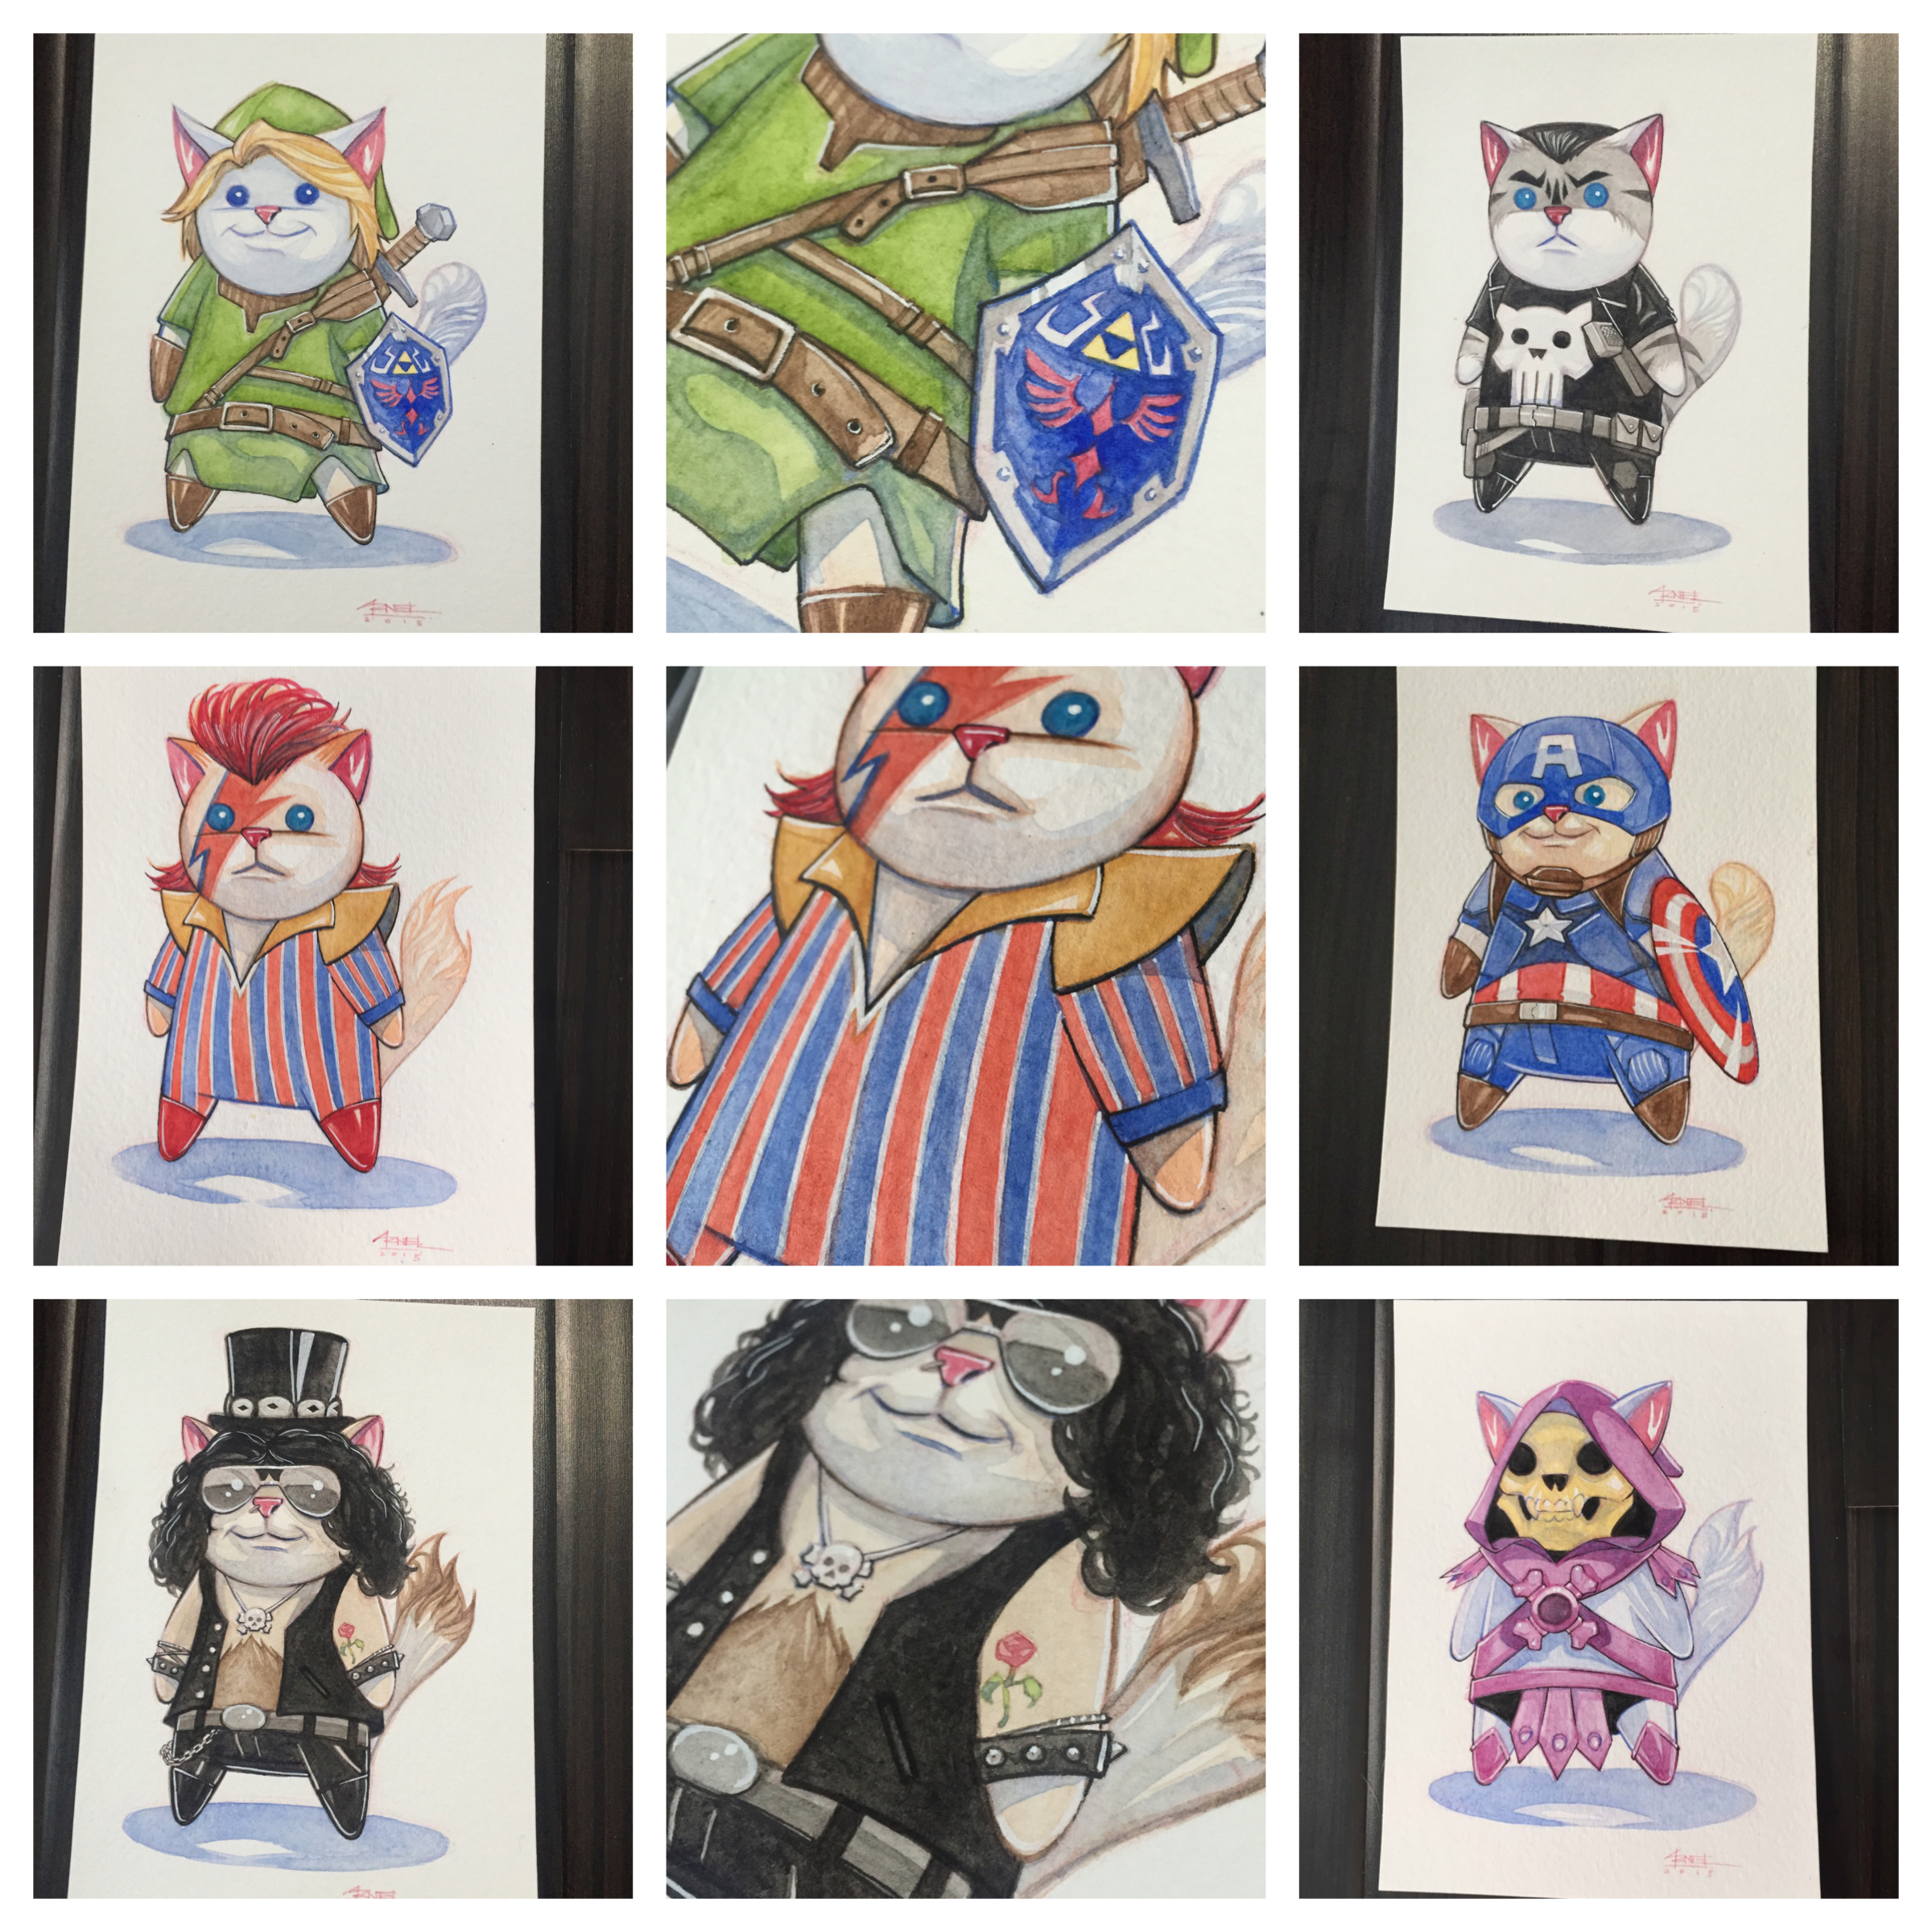 Various Pop Cats illustrated by Ninjabot Image by Ninjabot